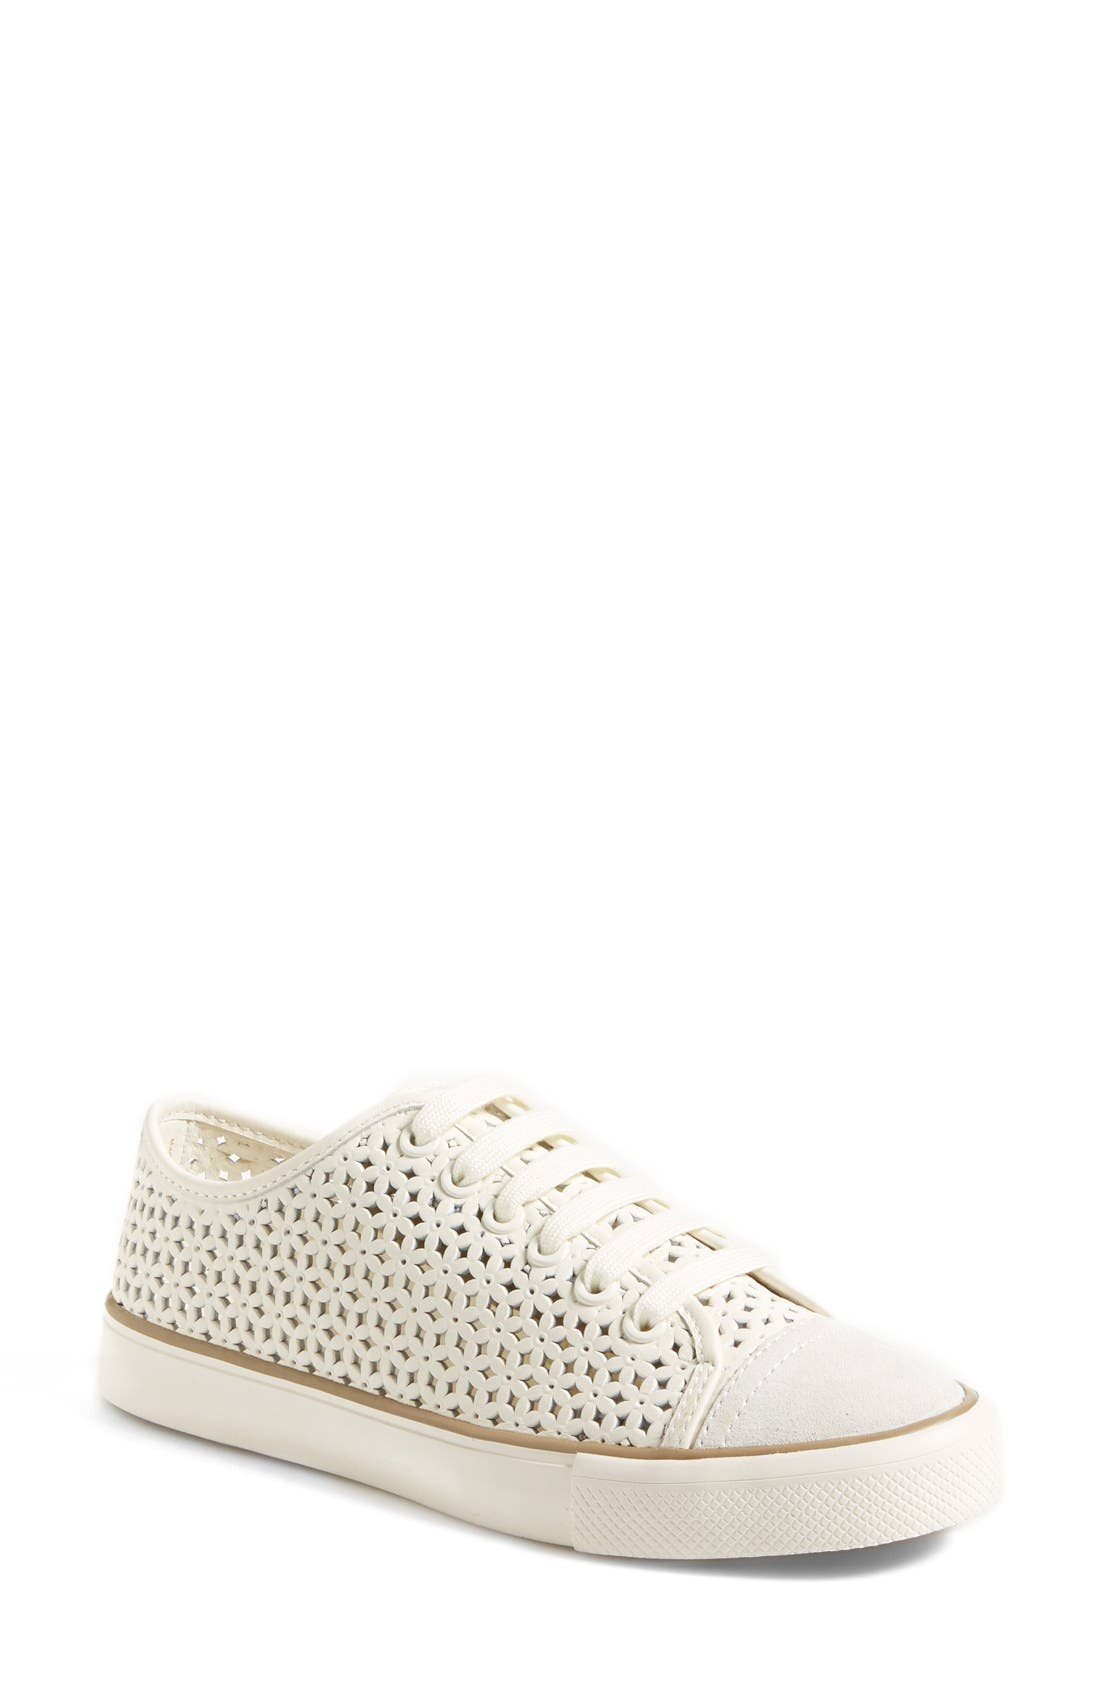 'Daisy' Perforated Sneaker,                             Main thumbnail 1, color,                             104